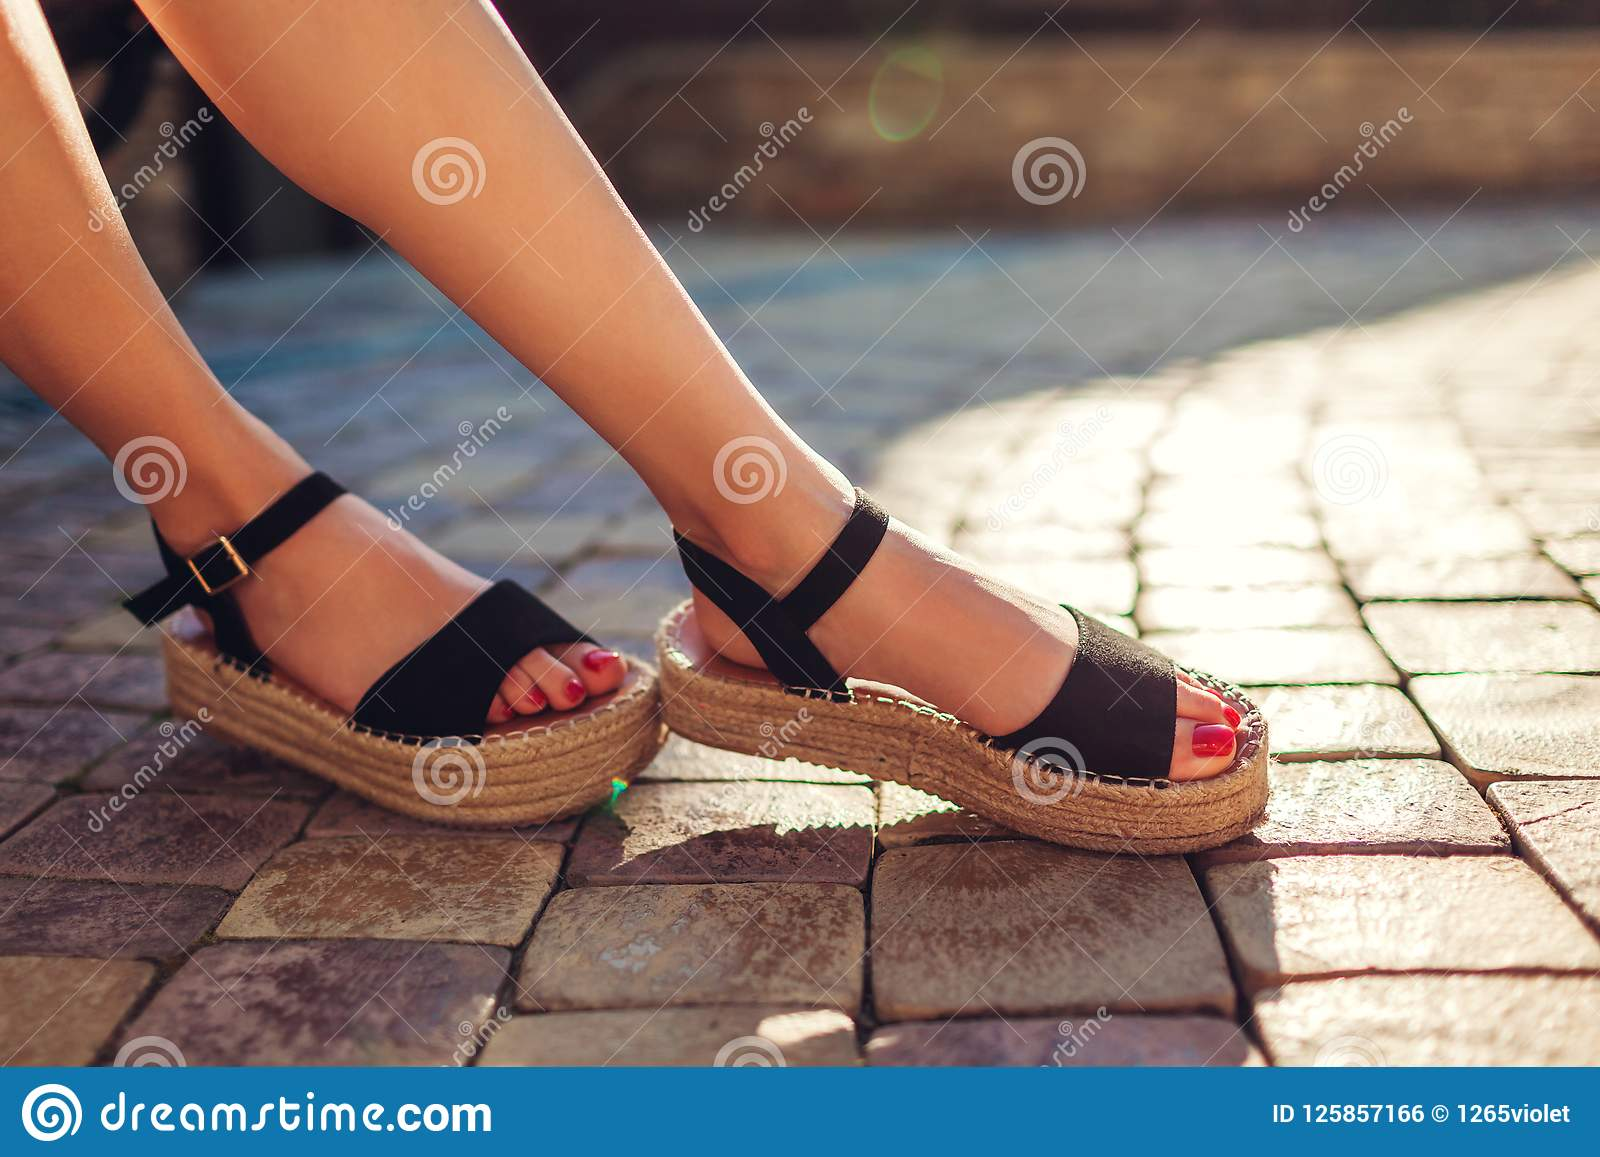 Summer sandals for women fashionable and beautiful: models, photos 35